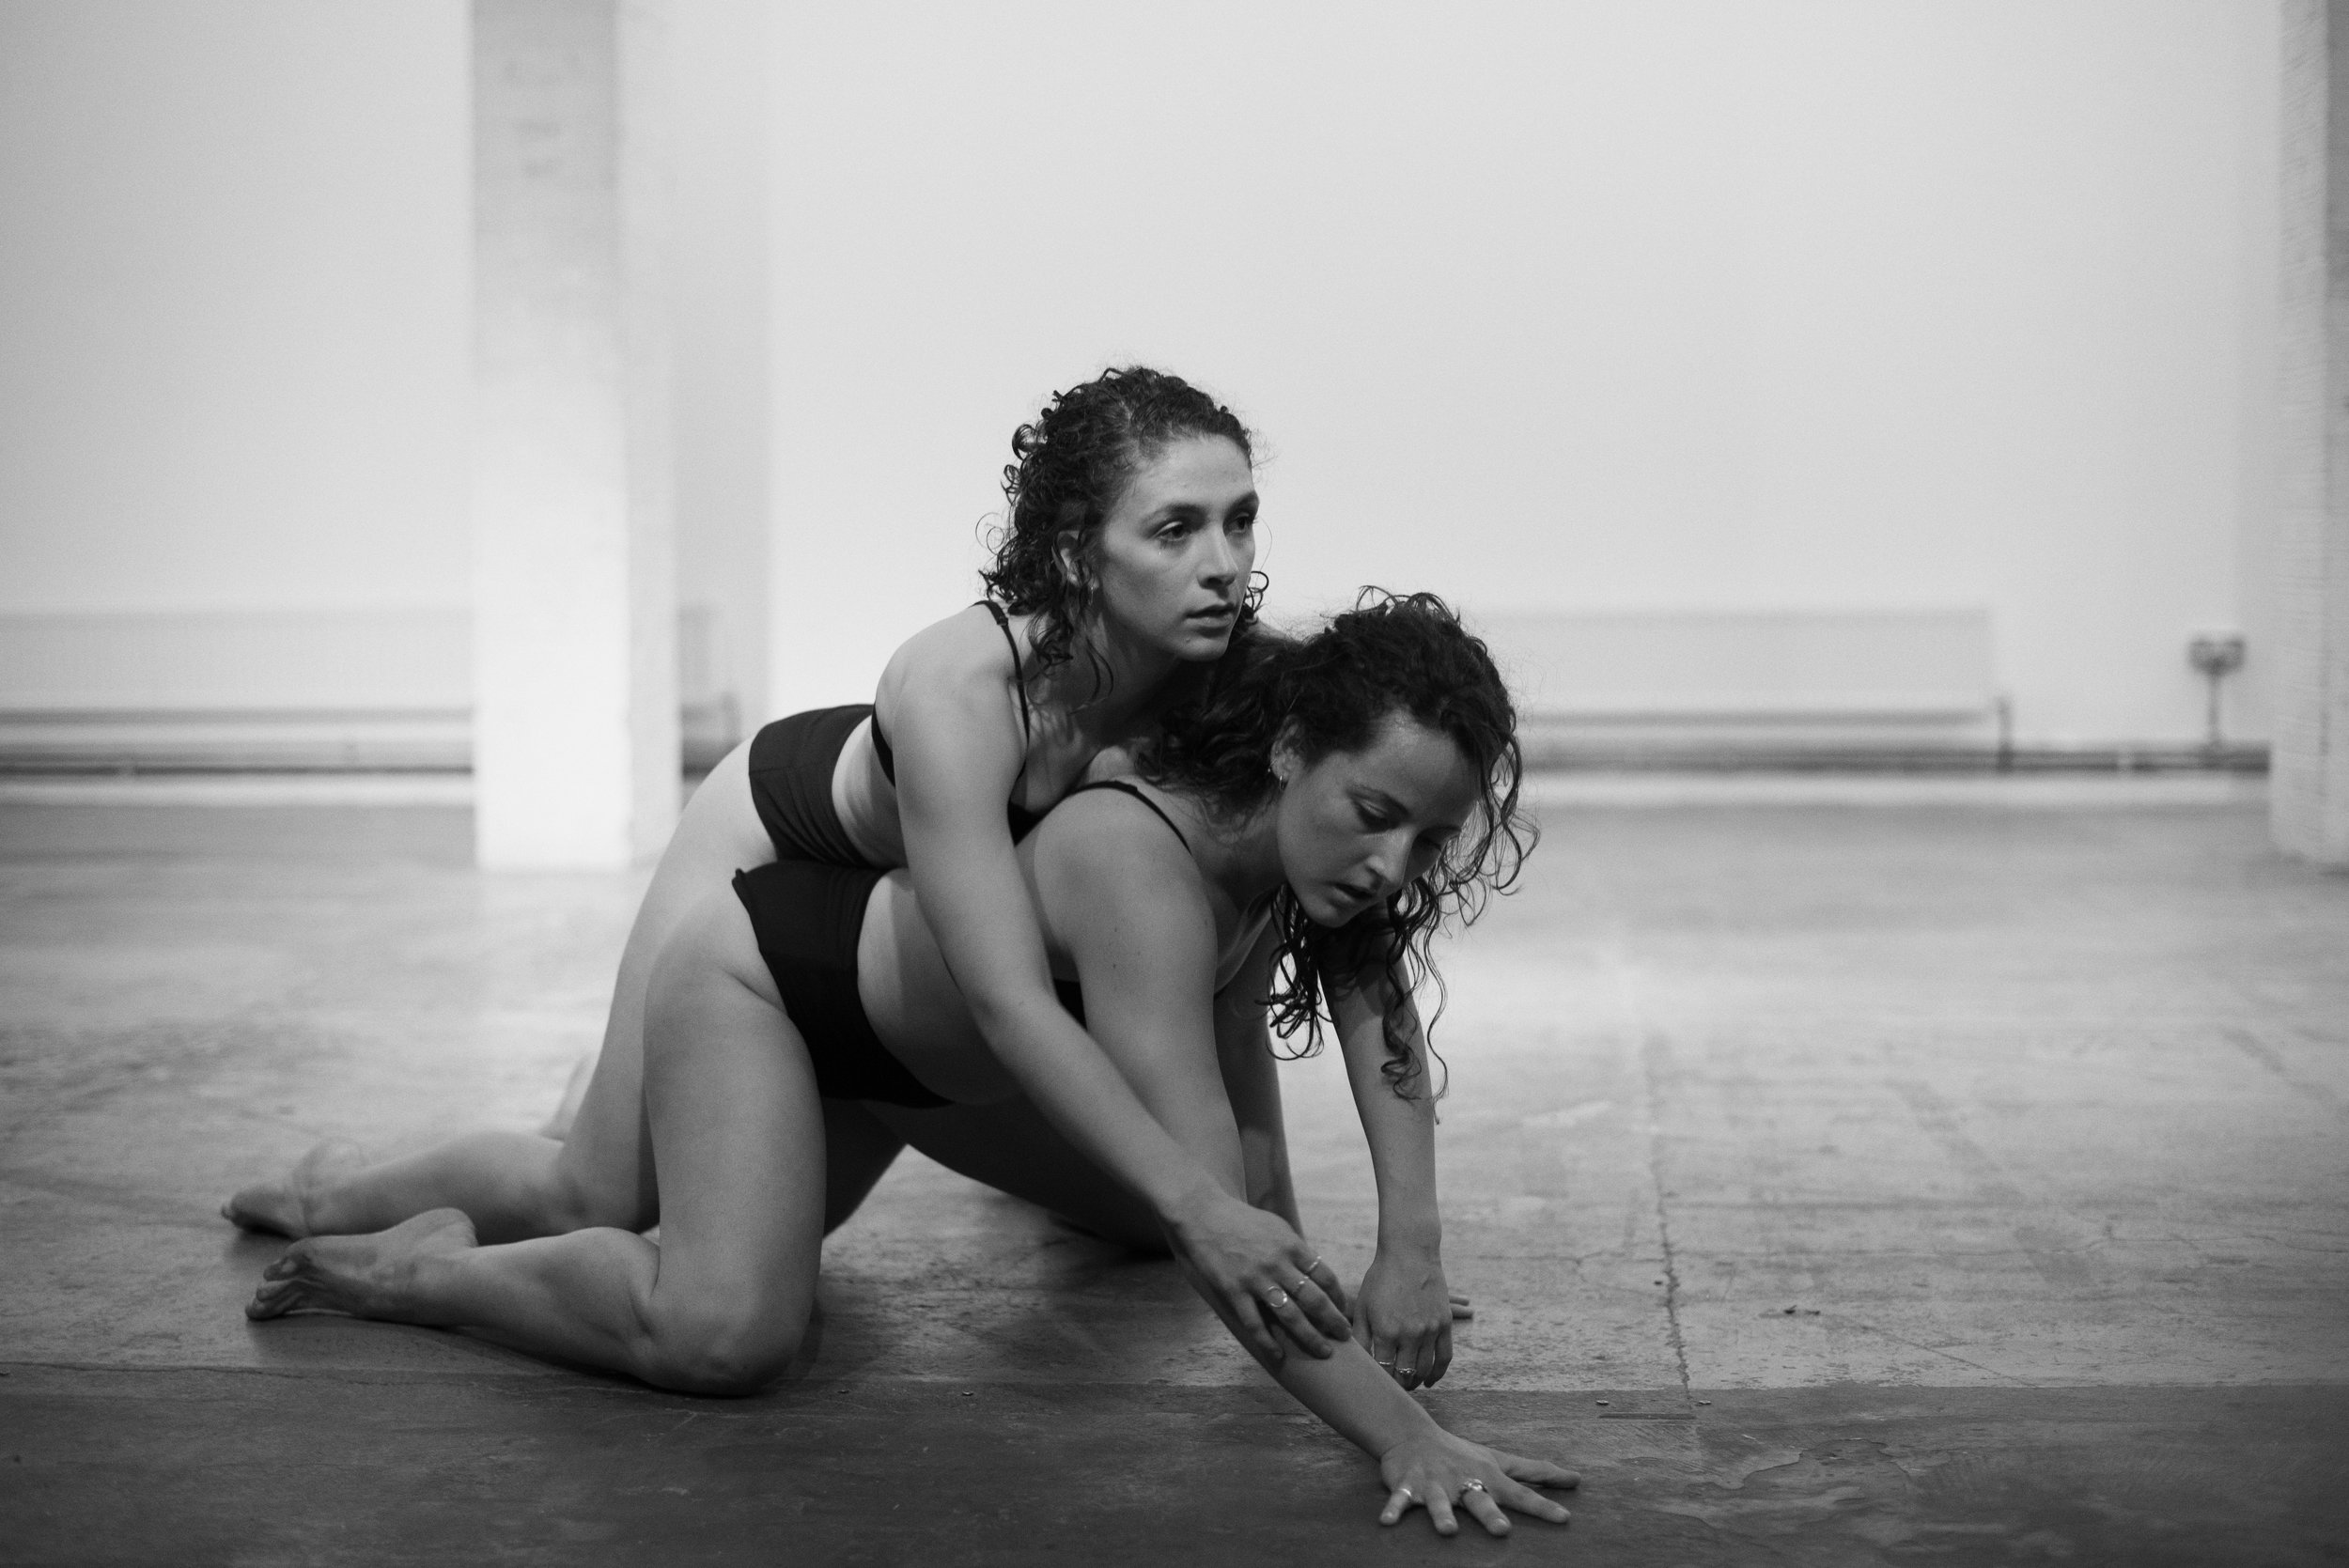 'Act 1, Part 2' by SISTA SISTA performed at Guest Projects, Art Night London: Curated by Cairo Clarke in response to Hannah Perry's 'Act 1, Part 1'. Image by Dave Blackburn. Dancers Madison Capel-Bird & Lydia Buckler (2017)